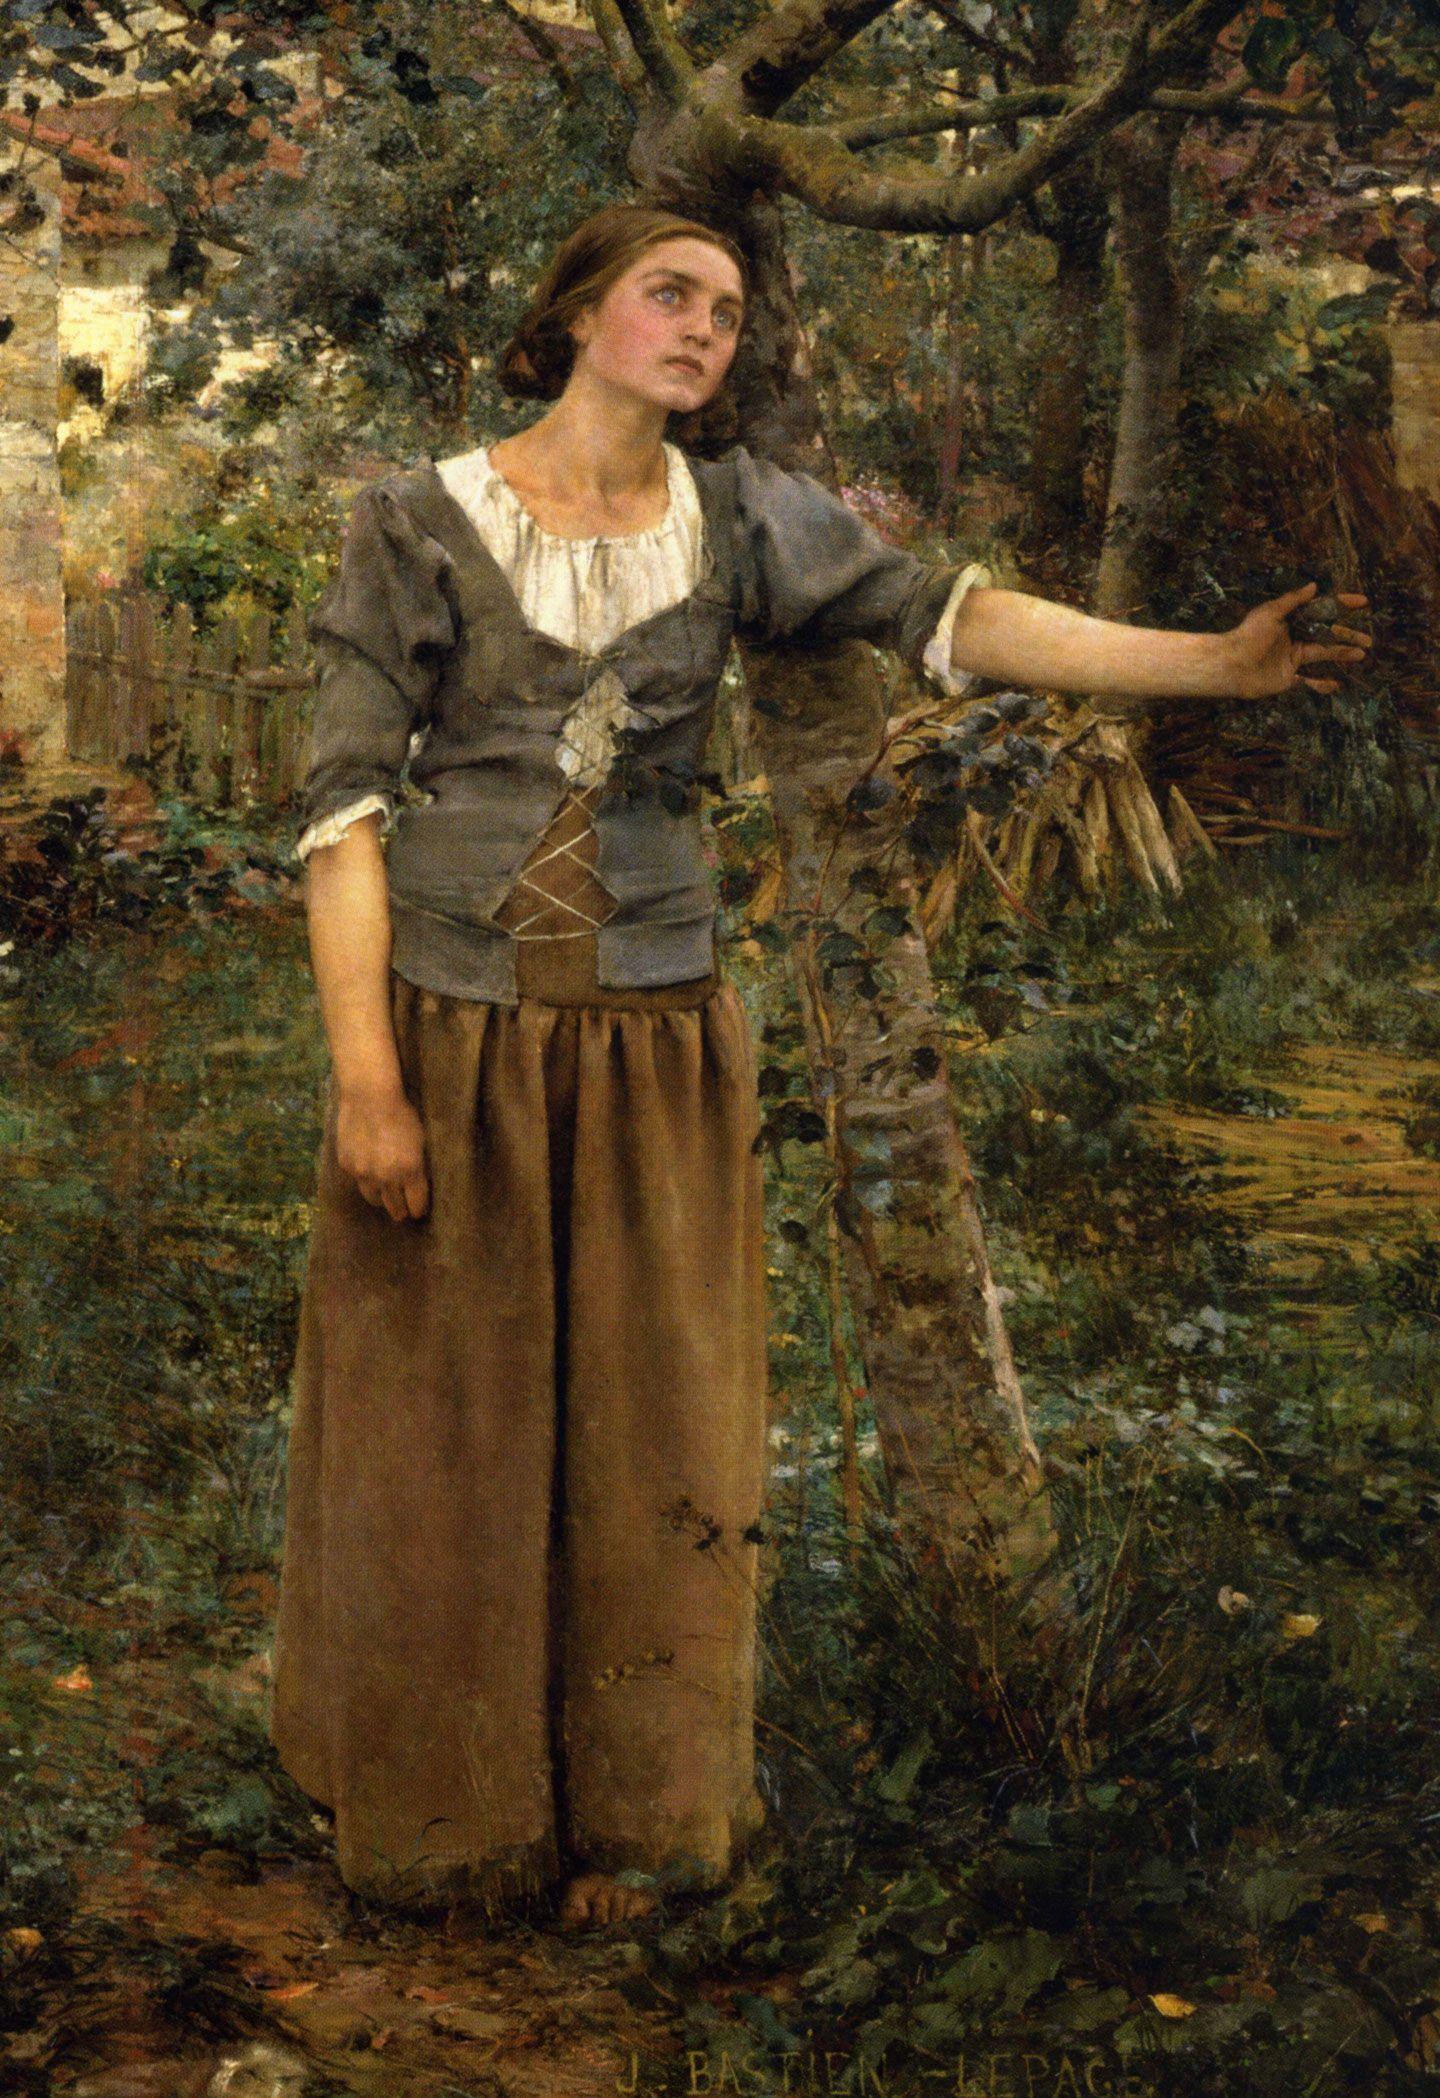 an assessment of the painting joan of arc by jules bastien lepage The metropolitan museum of art: masterpiece paintings is the met's first  complete survey  crossing the delaware and jules bastien-lepage's joan of  arc  and much more of an appreciation for art outside of my specialty.